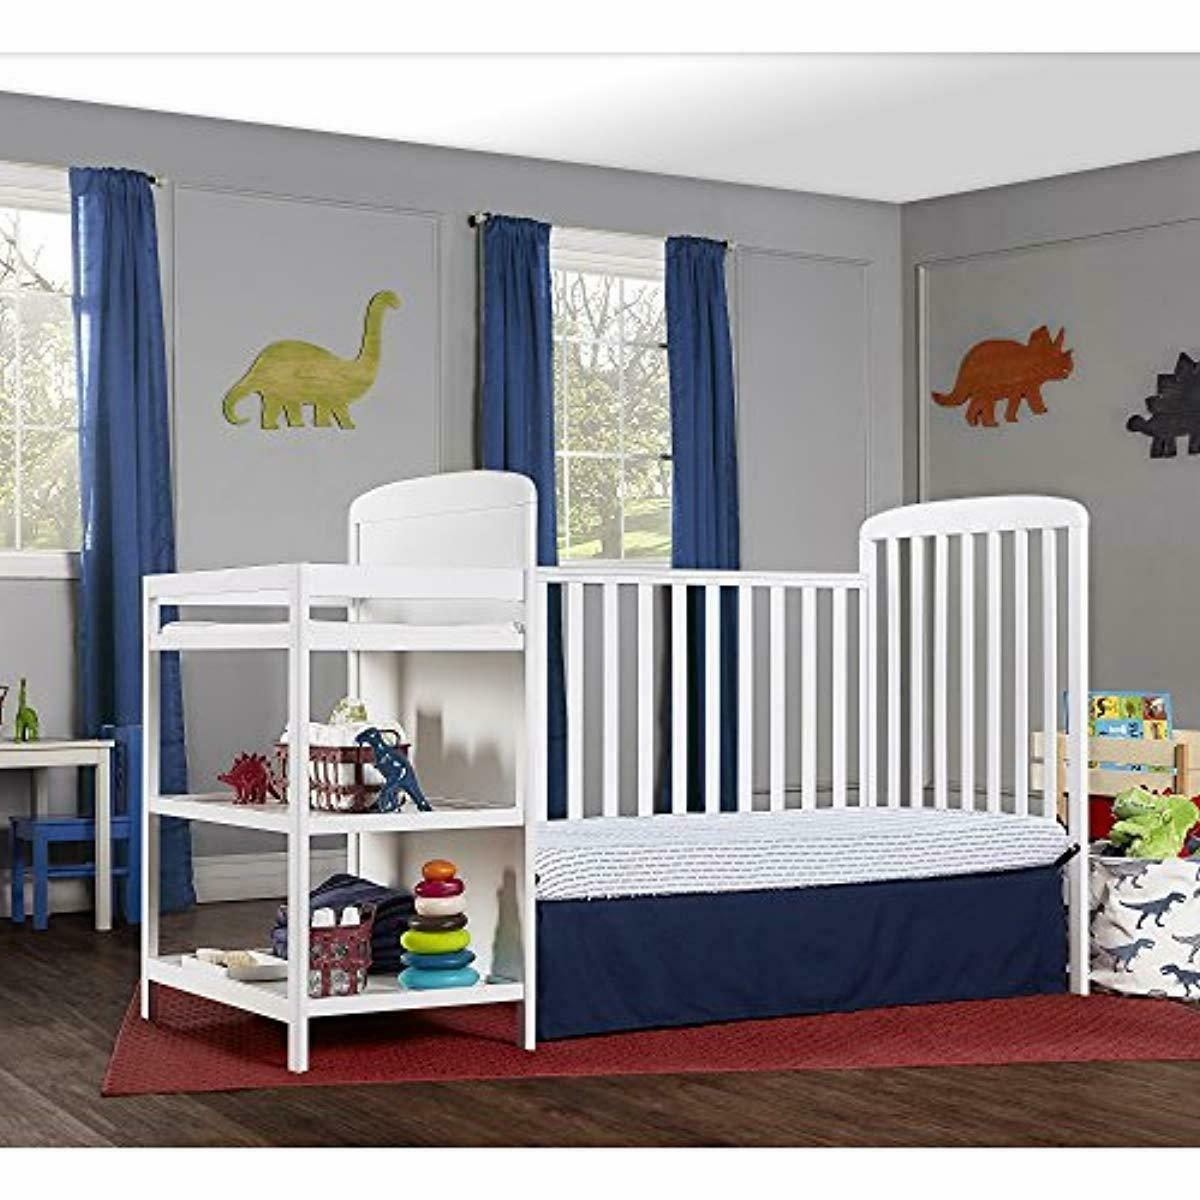 4 in Size Crib and Table Combo full size bed